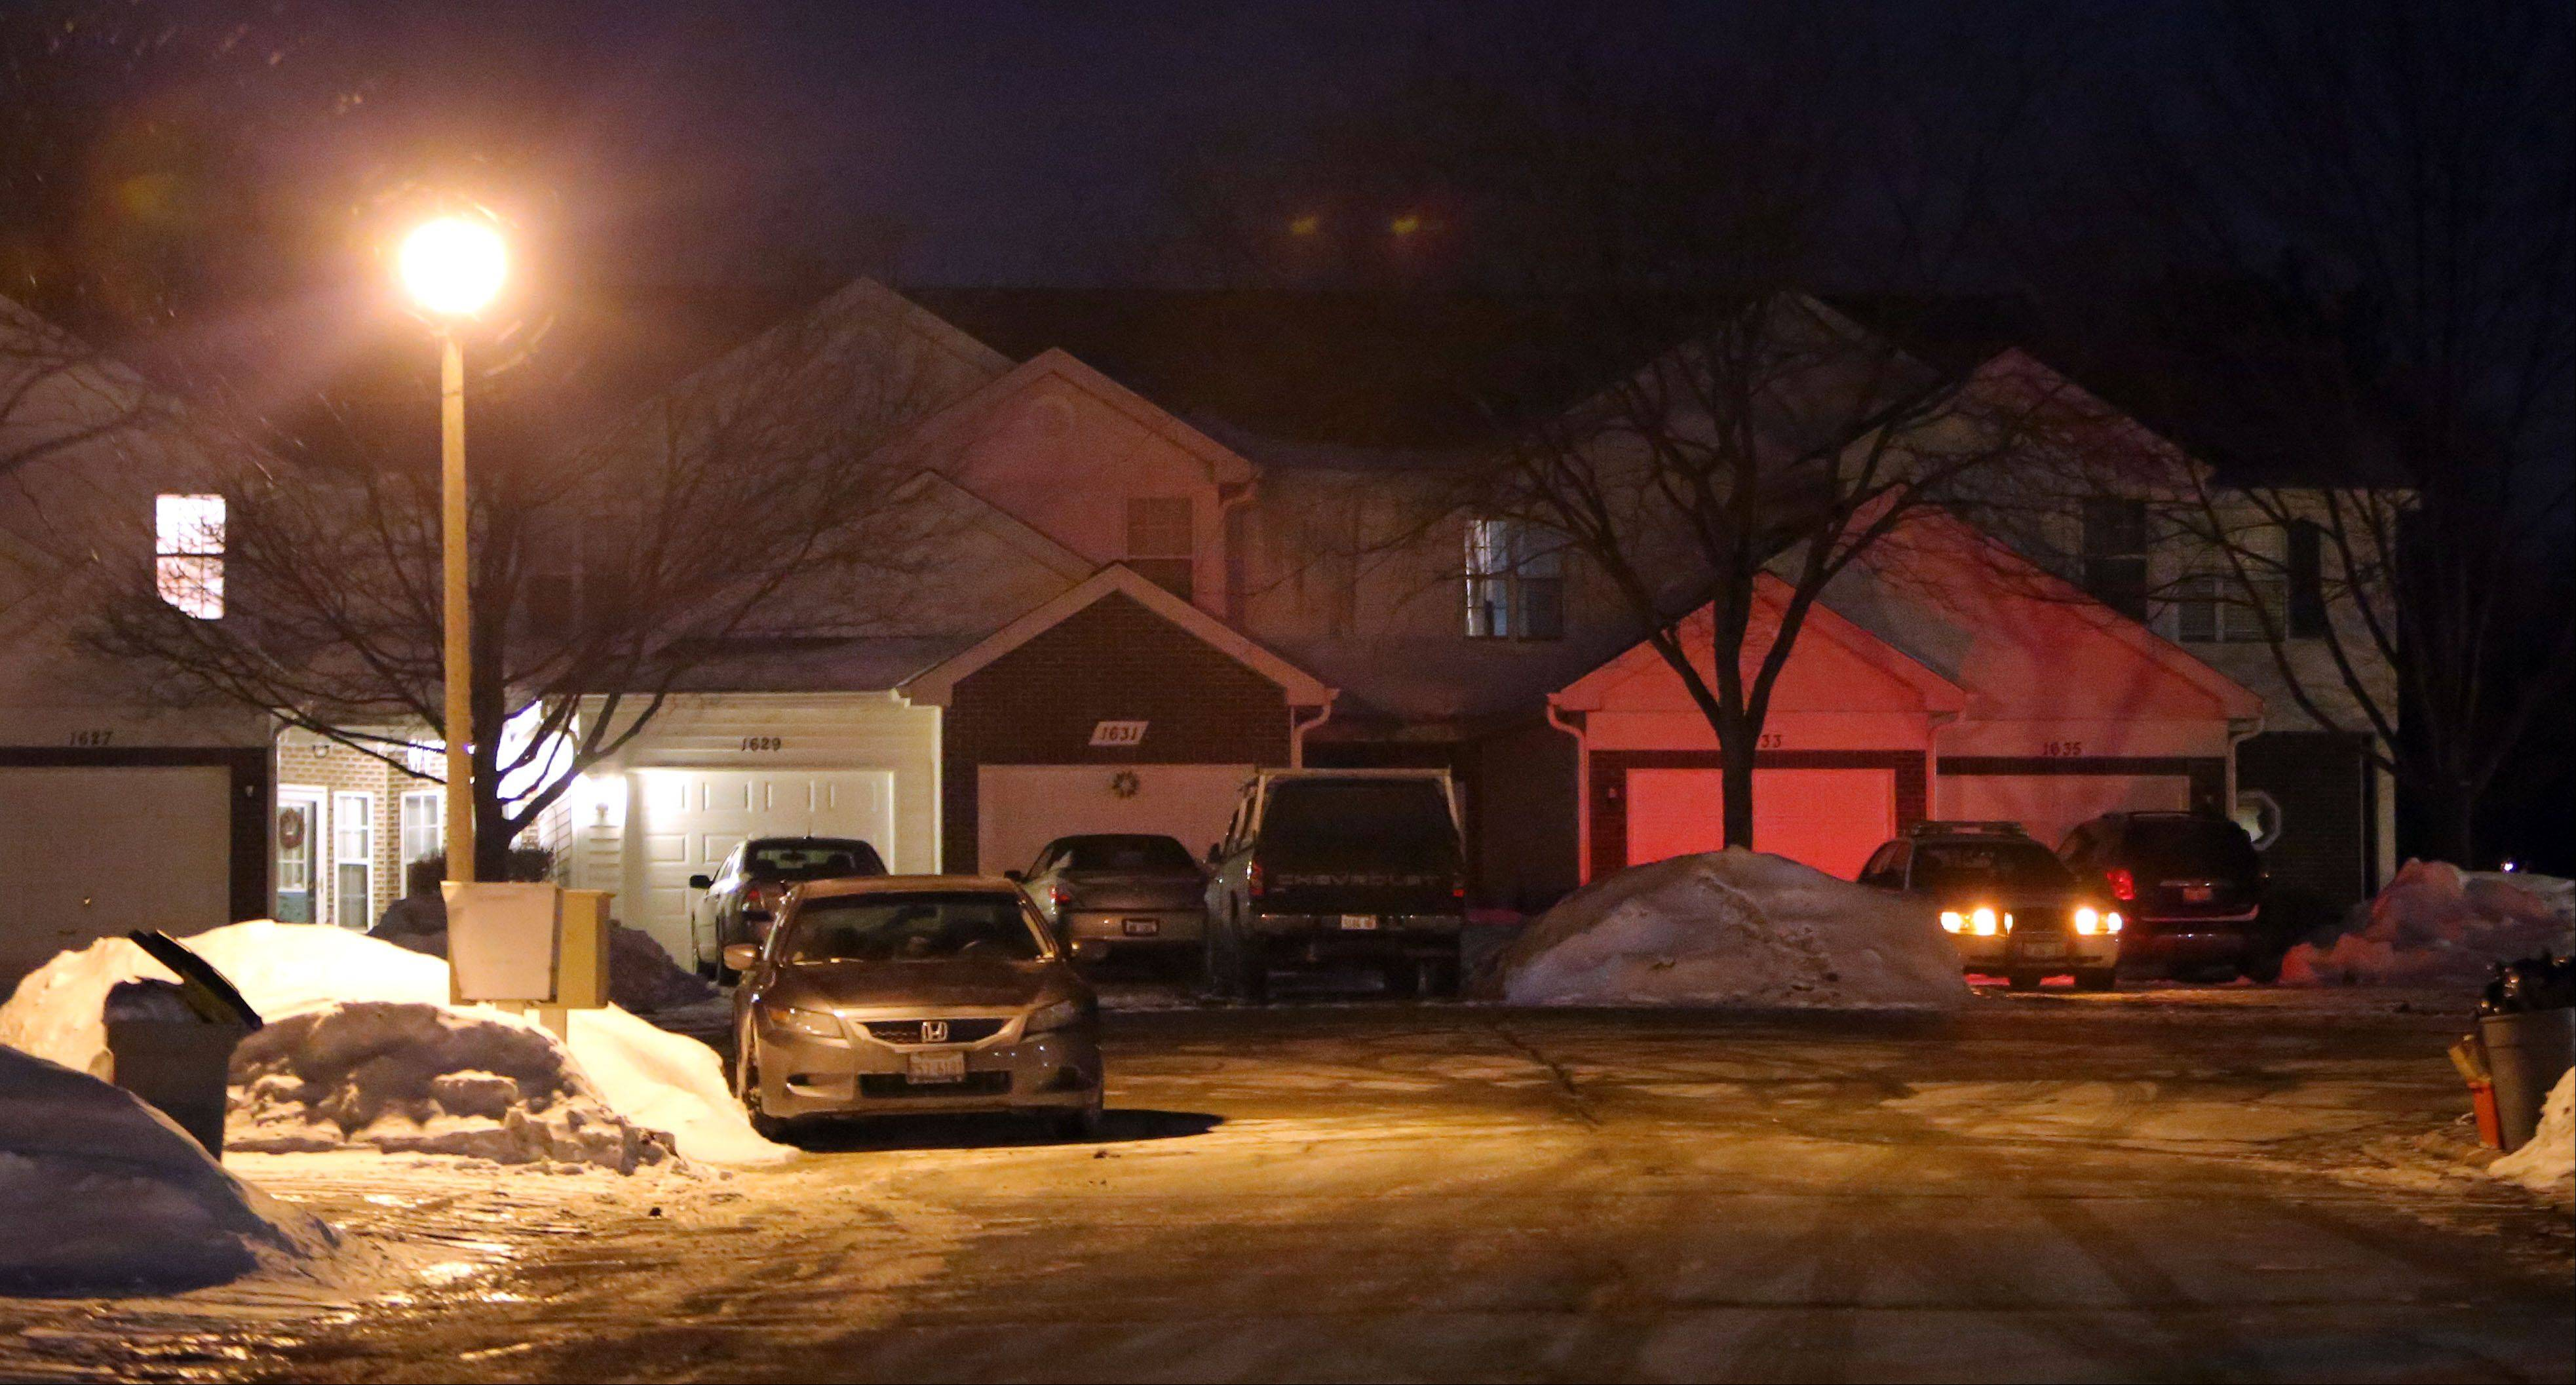 A 14-year-old girl faces first-degree murder charges in the stabbing death of her 11-year-old half-sister in their Mundelein home Tuesday.